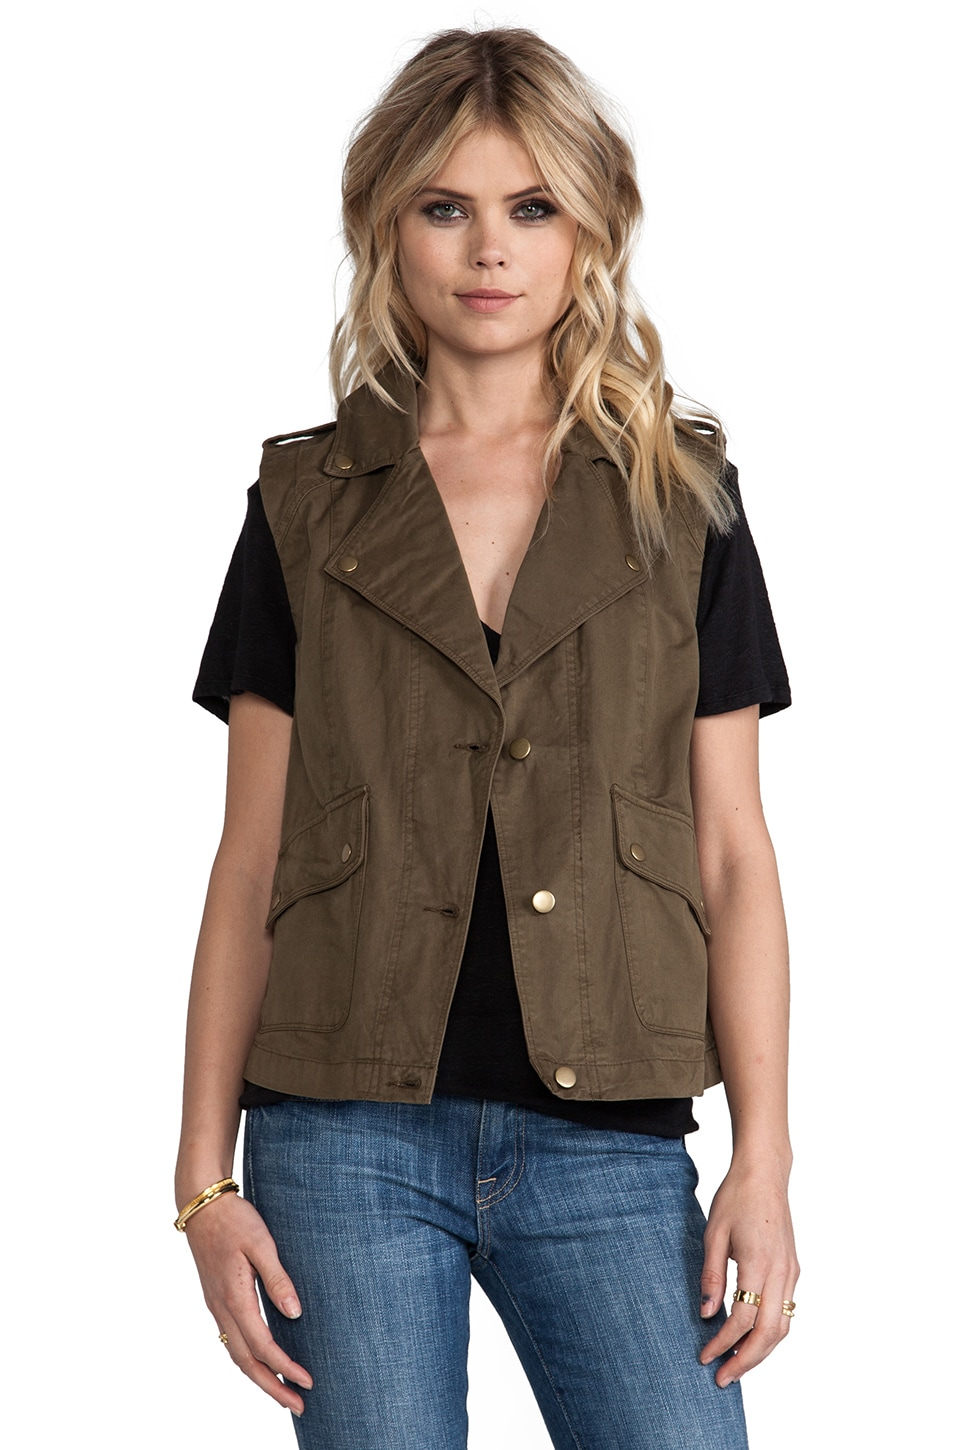 Bobi Military Vest in Army Green